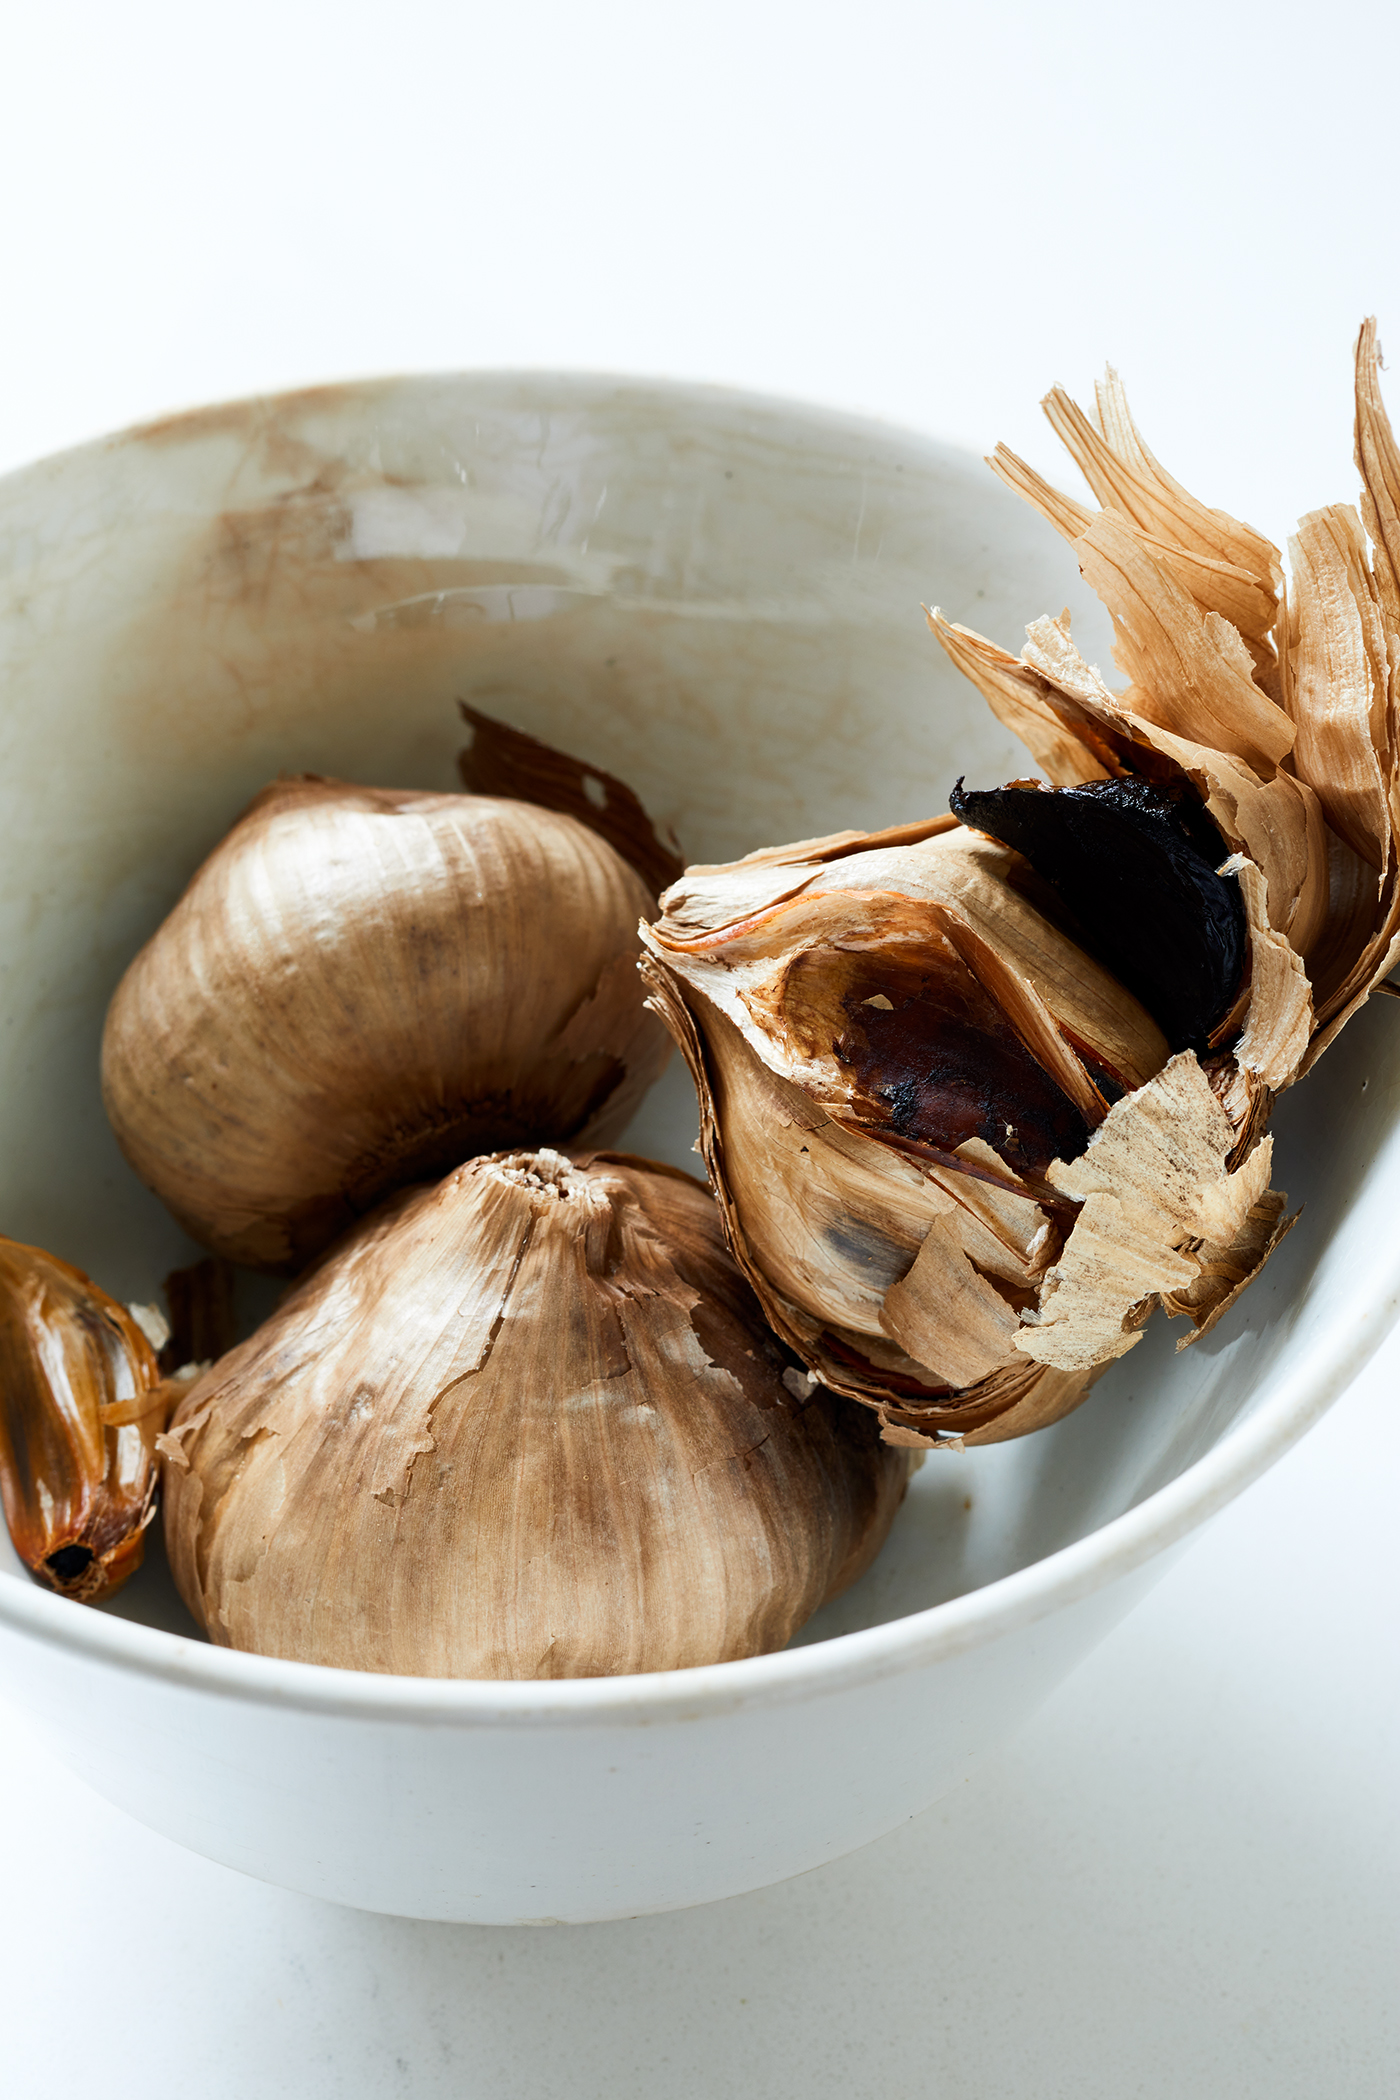 black garlic_Kitchen_repertoire_Dana_Gallagher_2018_0006.jpg